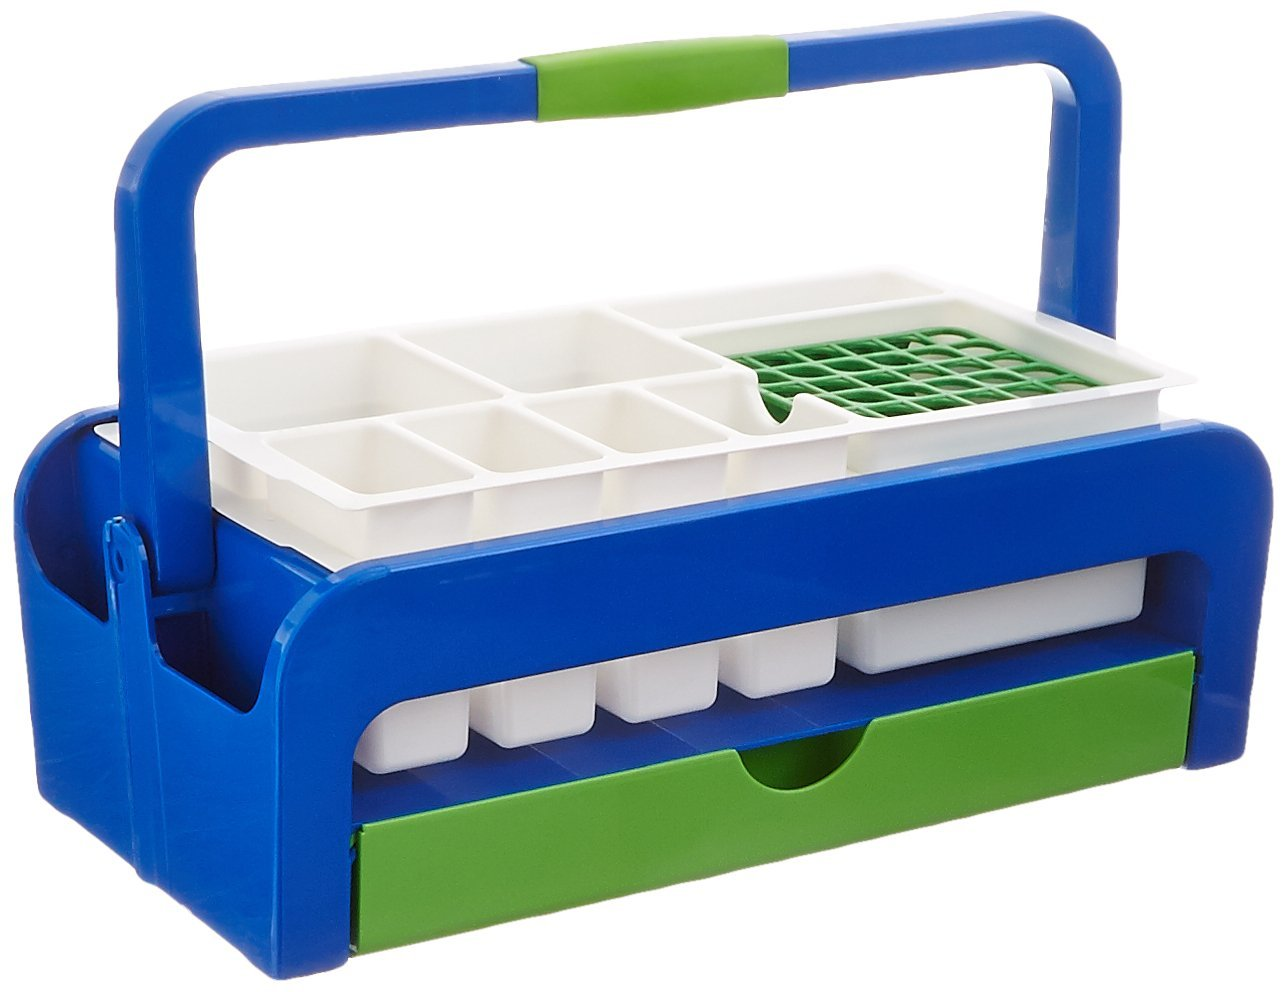 Heathrow Scientific HD2200B ABS Multipurpose Utility Tray with Two Inserts Style B, 429 mm Length x 265 mm Width x 172 mm Height, Blue/Green